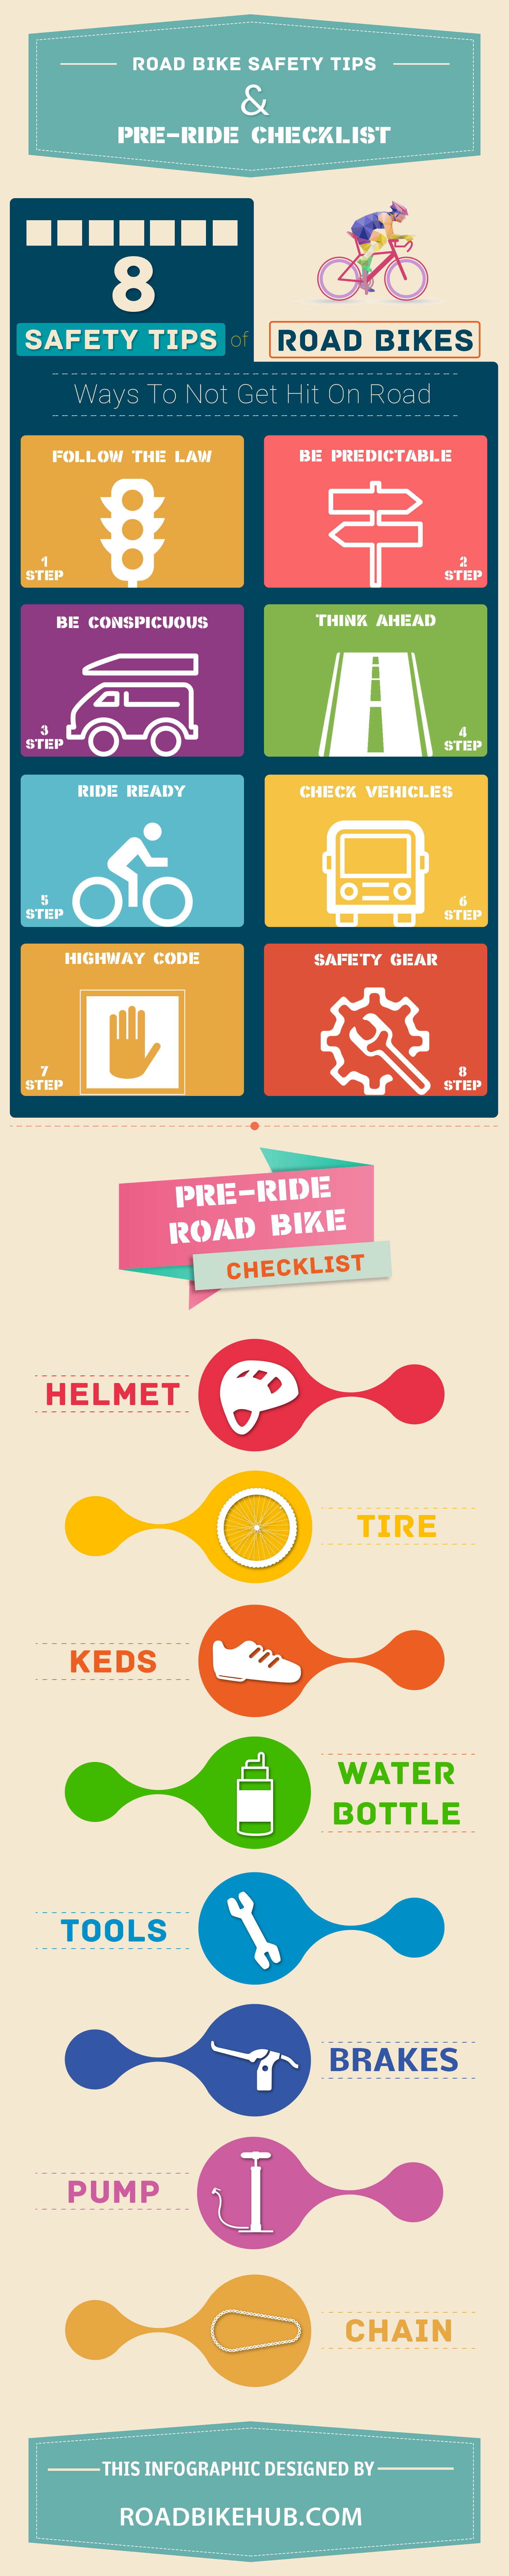 road bike